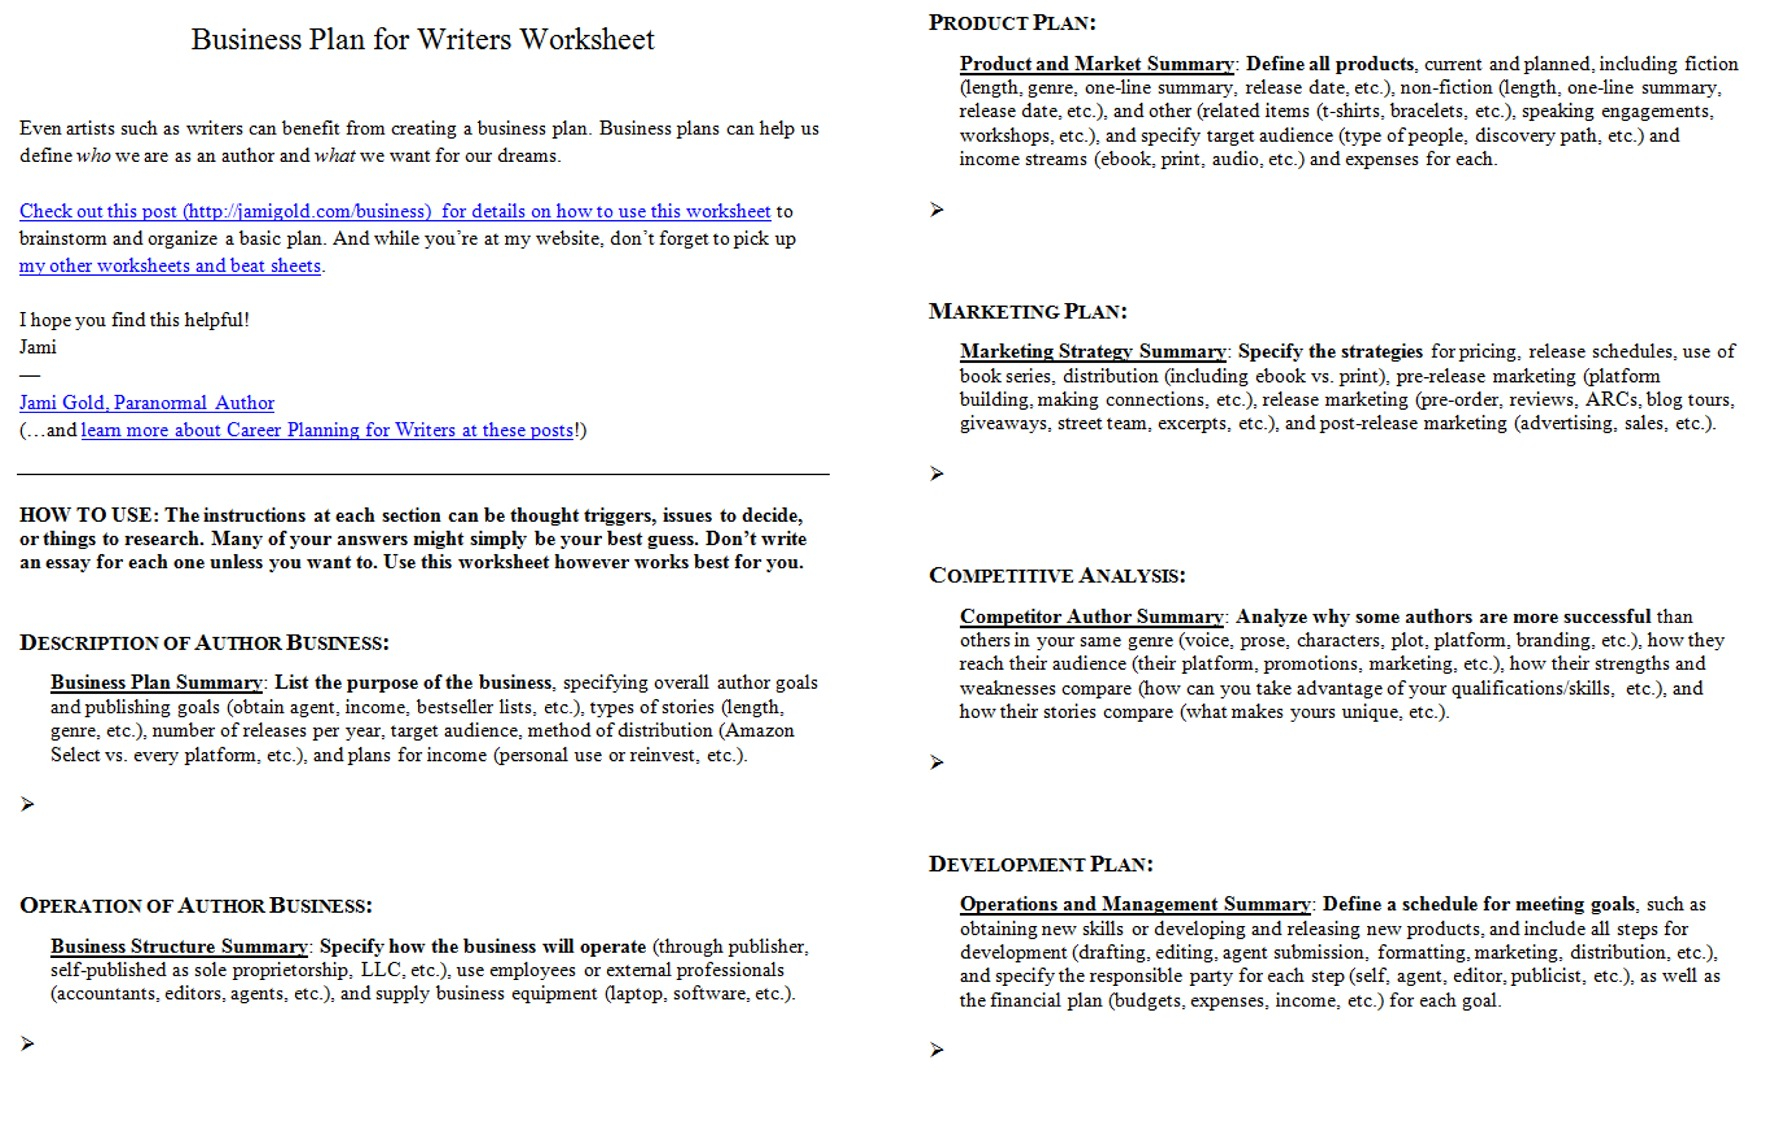 Weirdmailus  Marvellous Worksheets For Writers  Jami Gold Paranormal Author With Interesting Screen Shot Of Both Pages Of The Business Plan For Writers Worksheet With Captivating Fraction Operation Worksheets Also Pronouns Worksheet For Grade  In Addition Hop On Pop Worksheets And Comprehension Ks Worksheets As Well As  Worksheets Additionally Speech Bubbles Worksheet From Jamigoldcom With Weirdmailus  Interesting Worksheets For Writers  Jami Gold Paranormal Author With Captivating Screen Shot Of Both Pages Of The Business Plan For Writers Worksheet And Marvellous Fraction Operation Worksheets Also Pronouns Worksheet For Grade  In Addition Hop On Pop Worksheets From Jamigoldcom